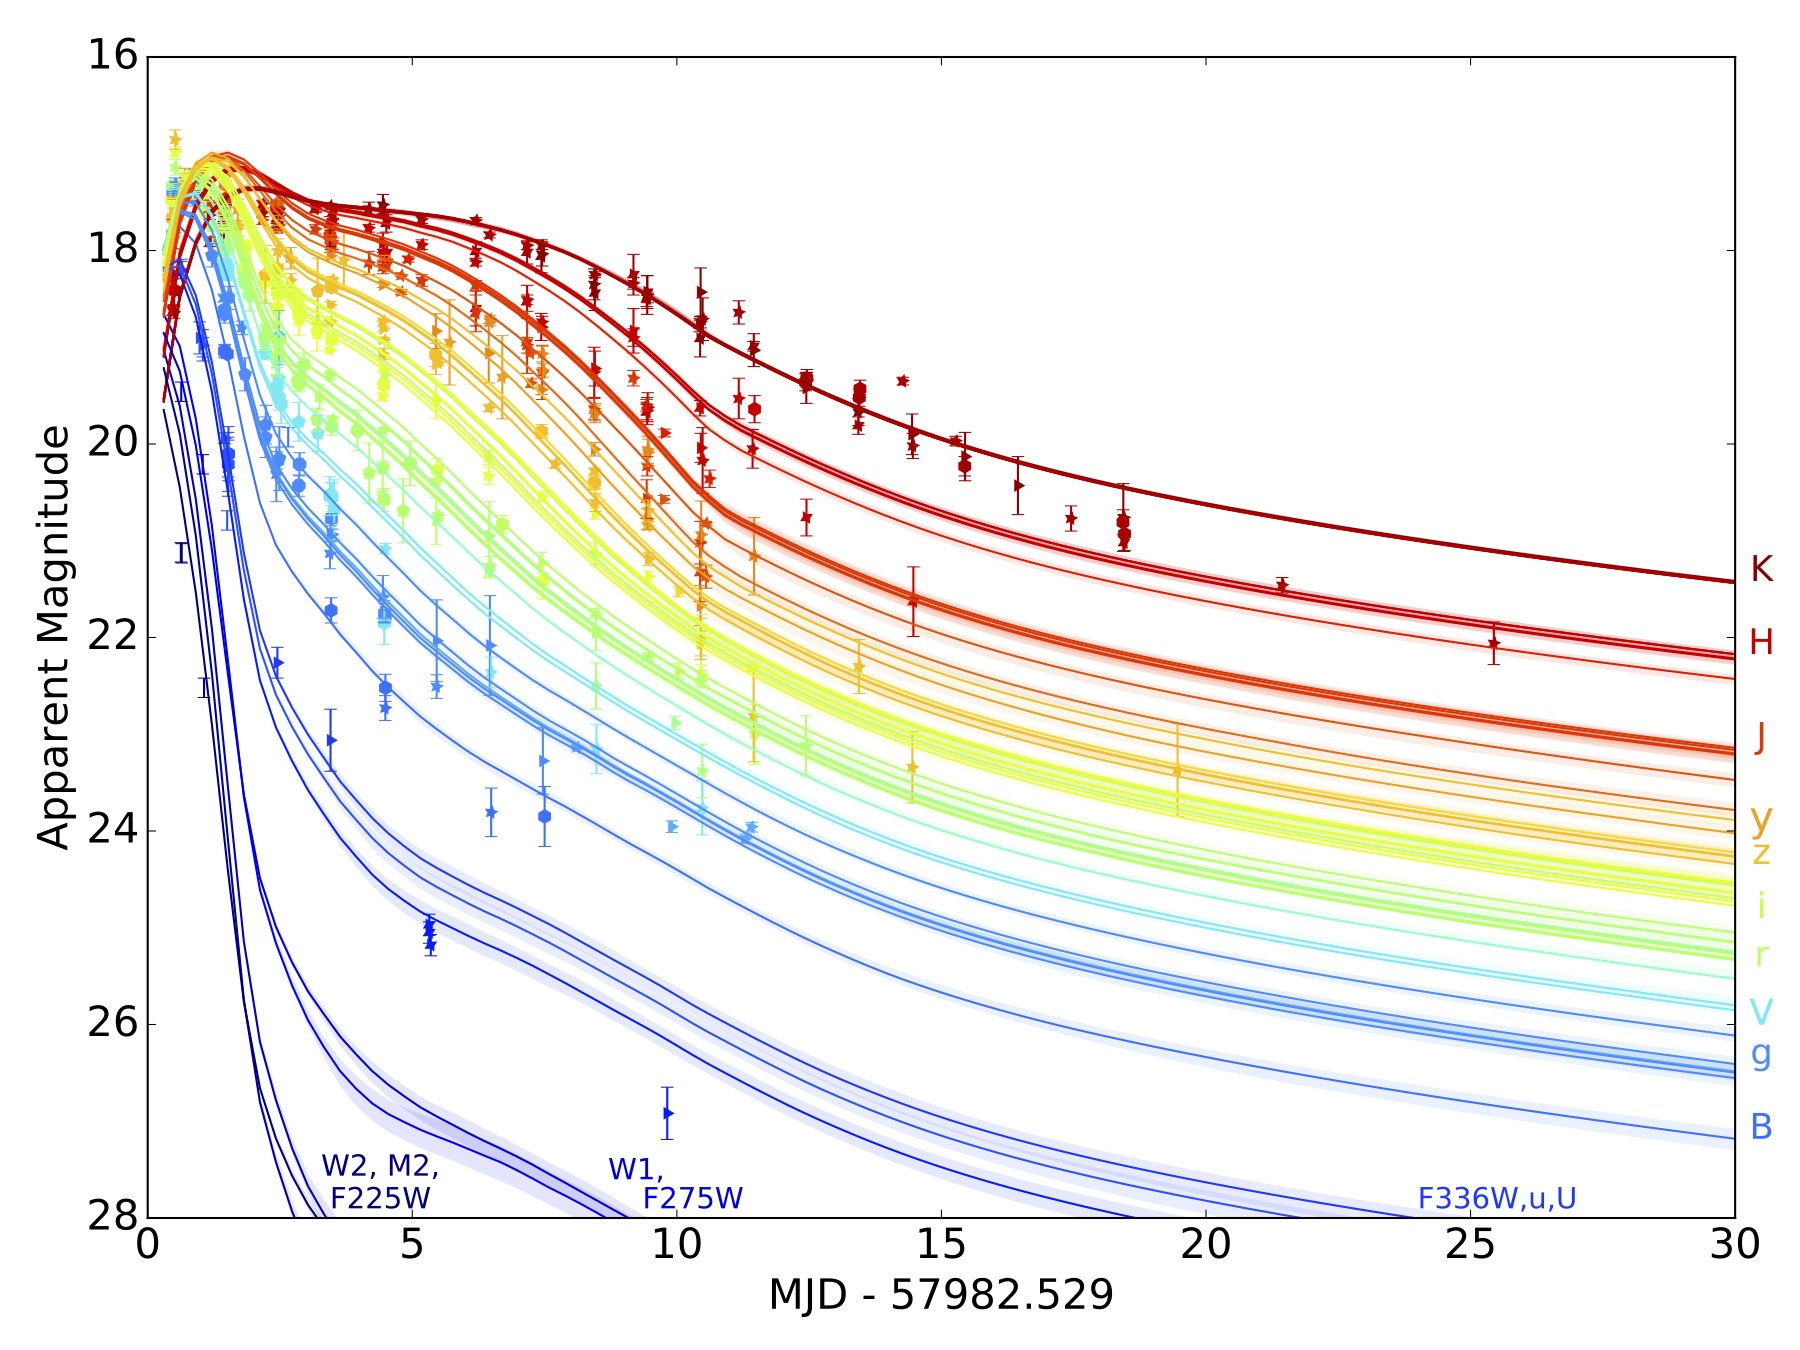 Theoretical models generated with MOSFiT (The Modular Open Source Fitter for Transients) for different observations of a binary neutron star merger. (Villar et al. 2017)